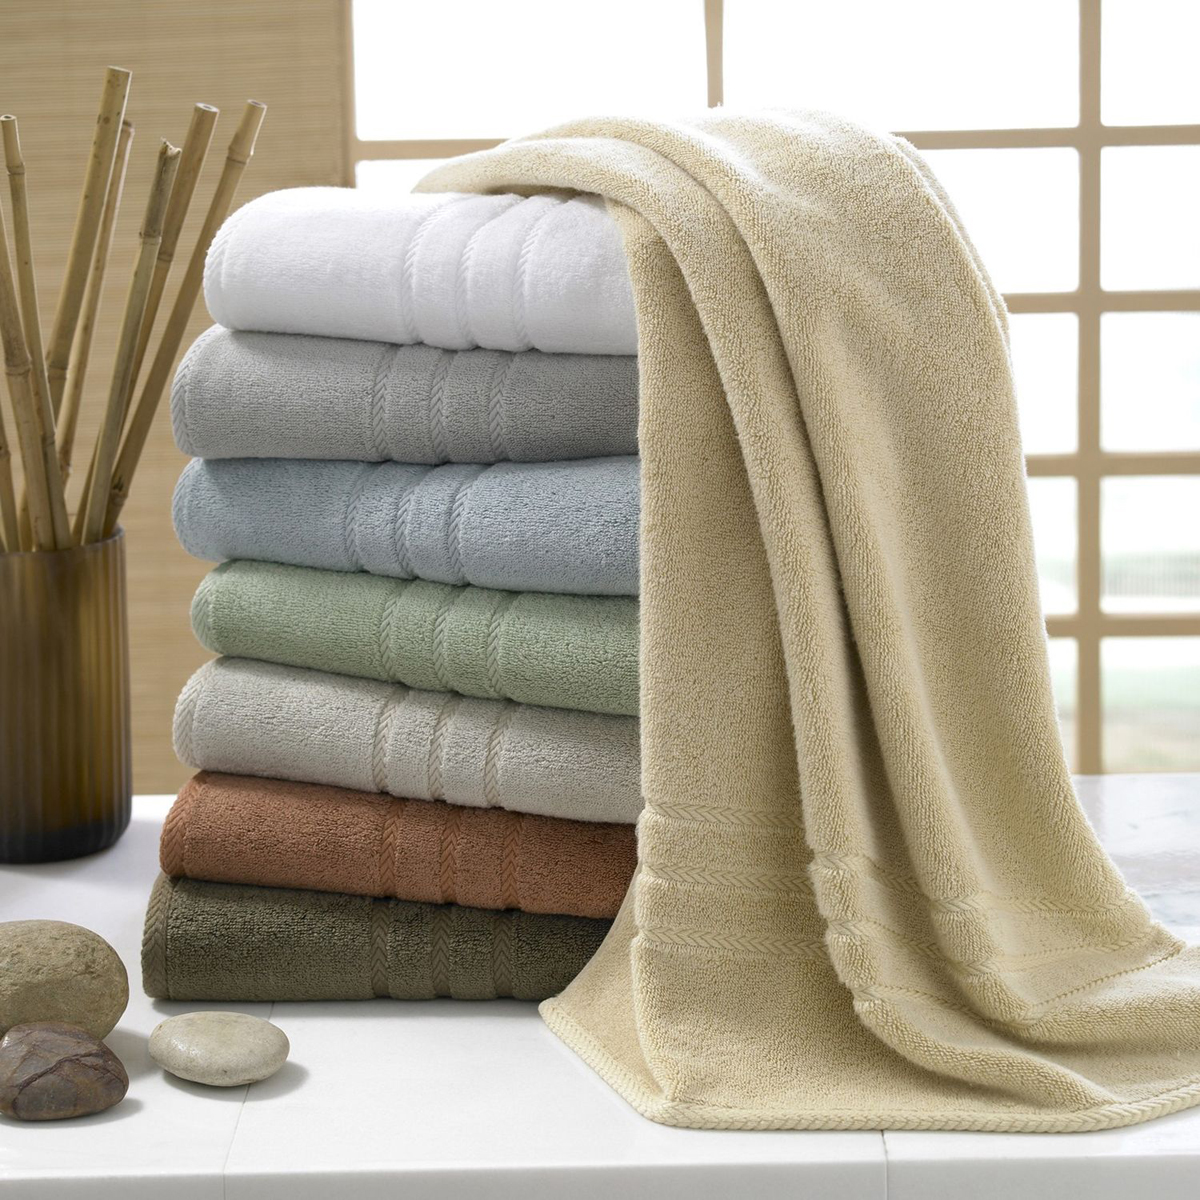 Towels  Hotel Textile Products Suppliers  Linen manufacturer In Delhi India